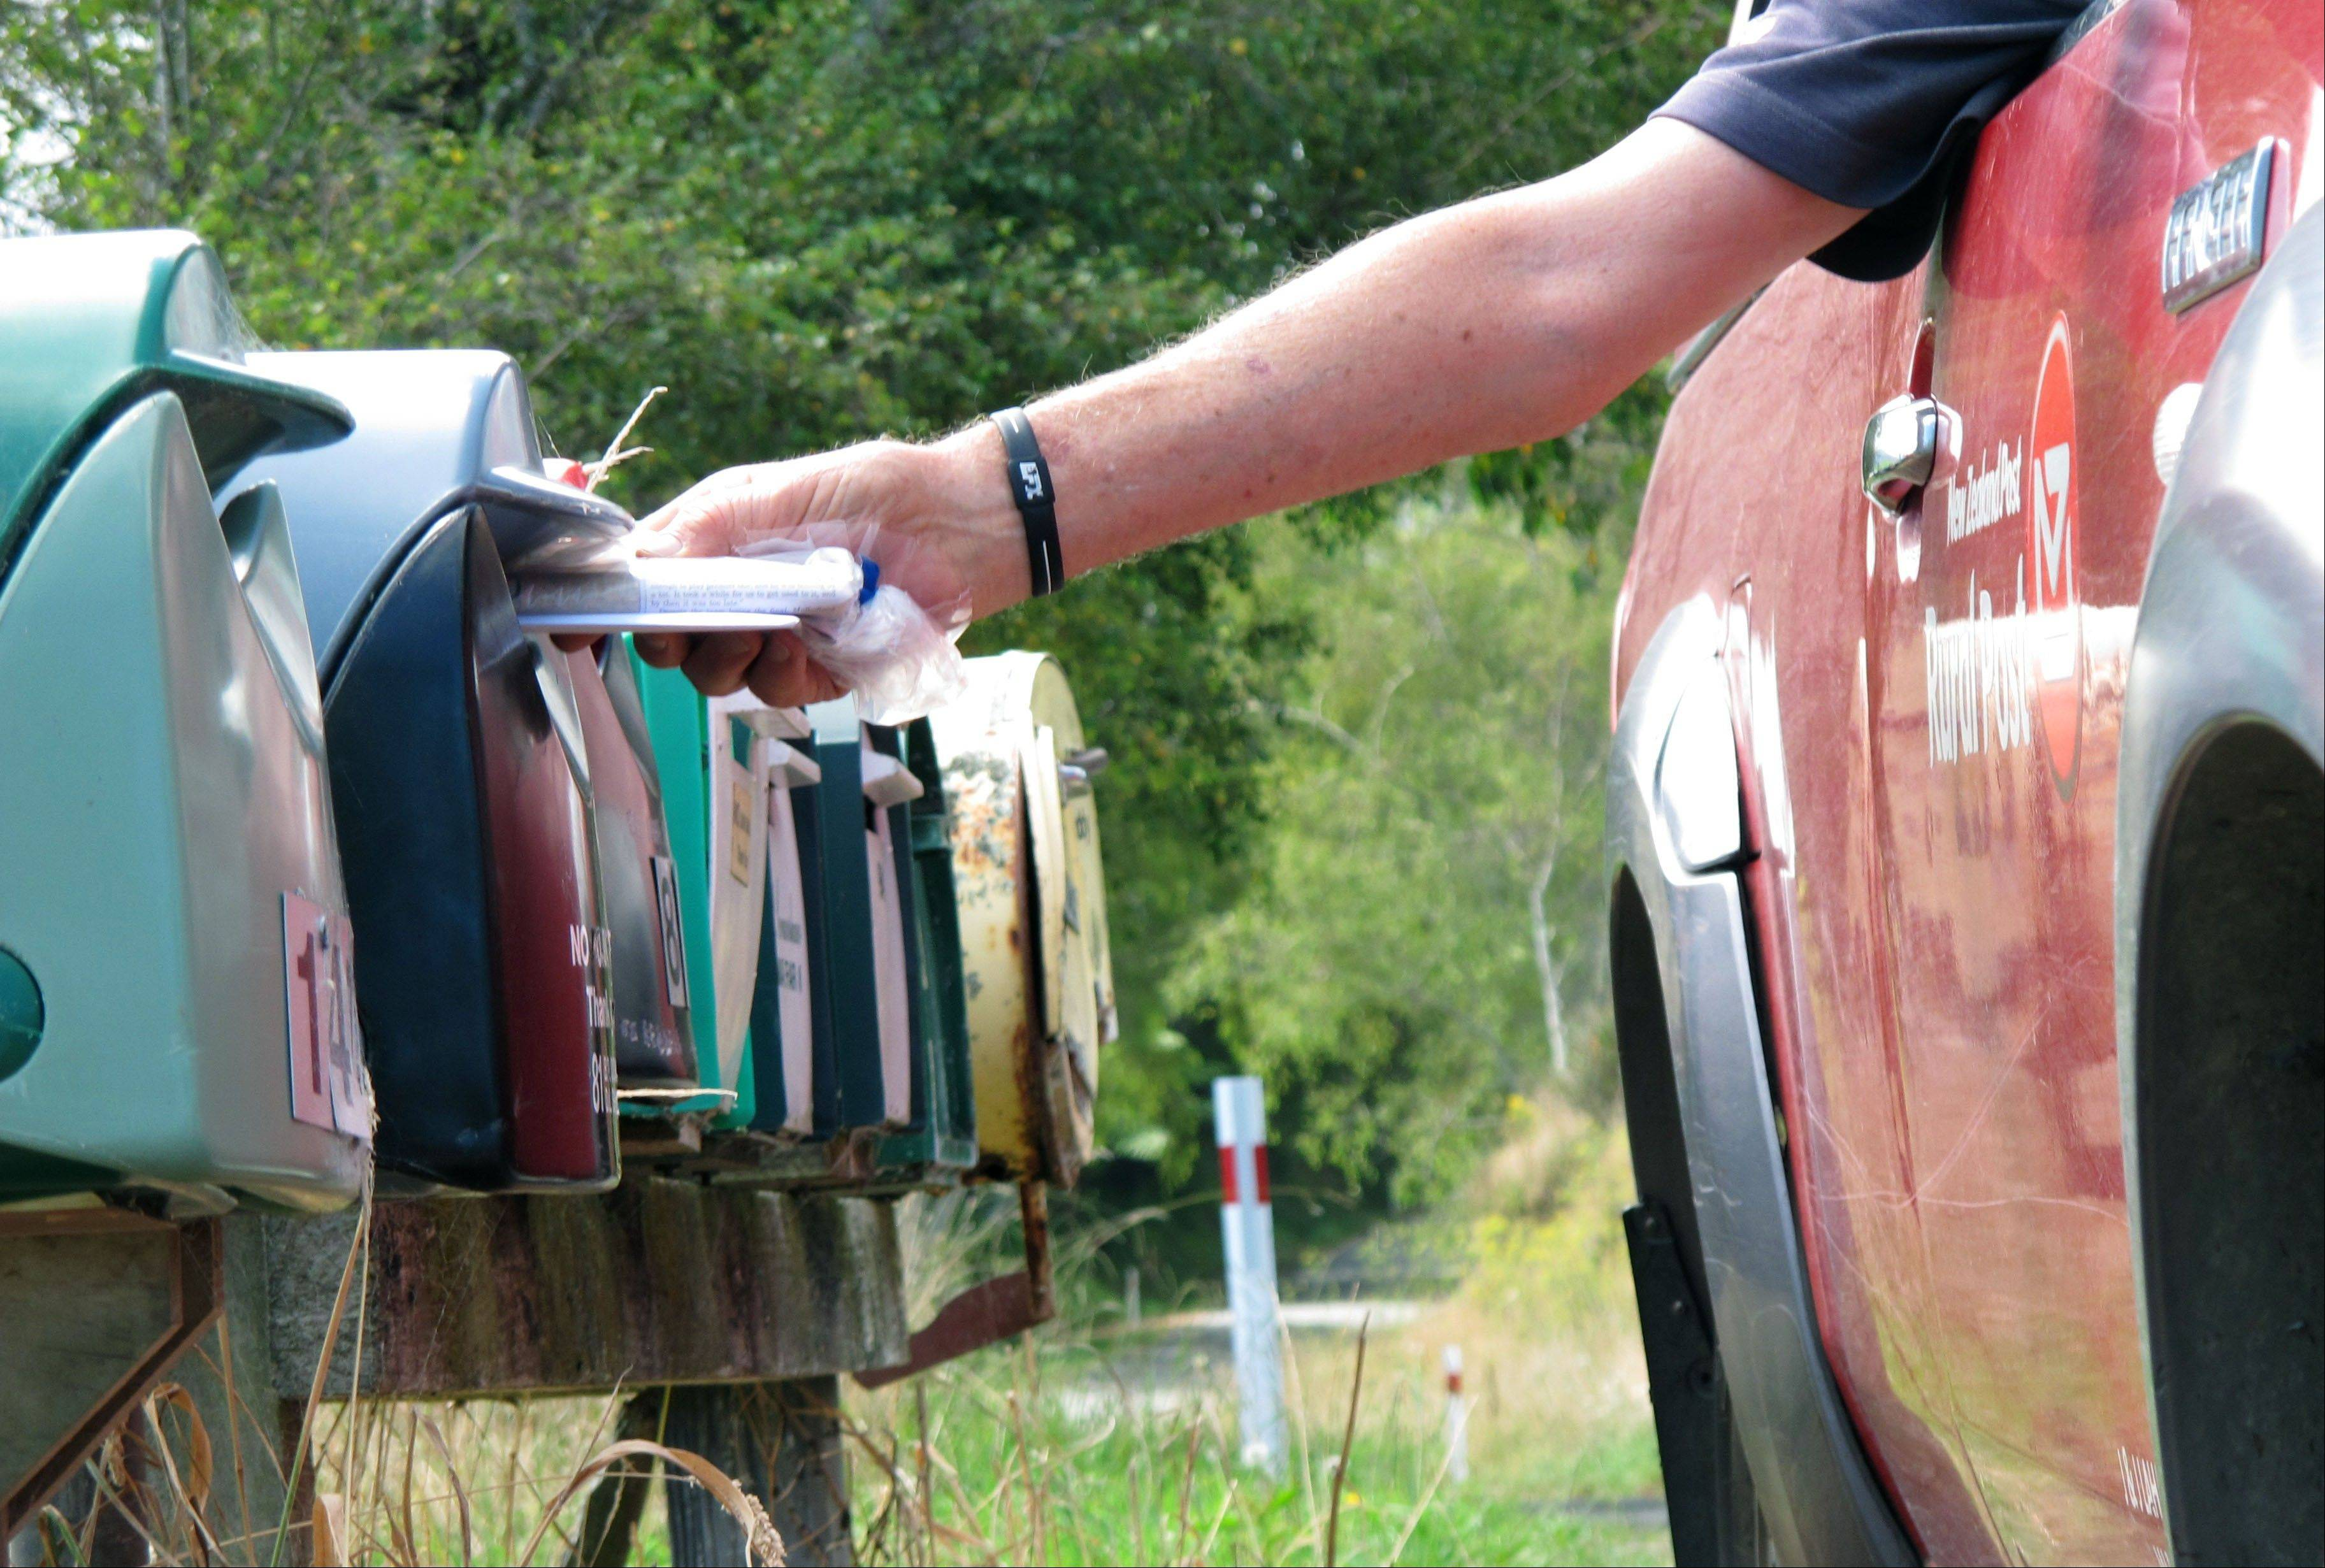 Associated PressPostman John Lahmert delivers mail in rural Otaki, New Zealand. New Zealand is considering cutting letter deliveries from six days a week to three as global demand for postal services dwindles.